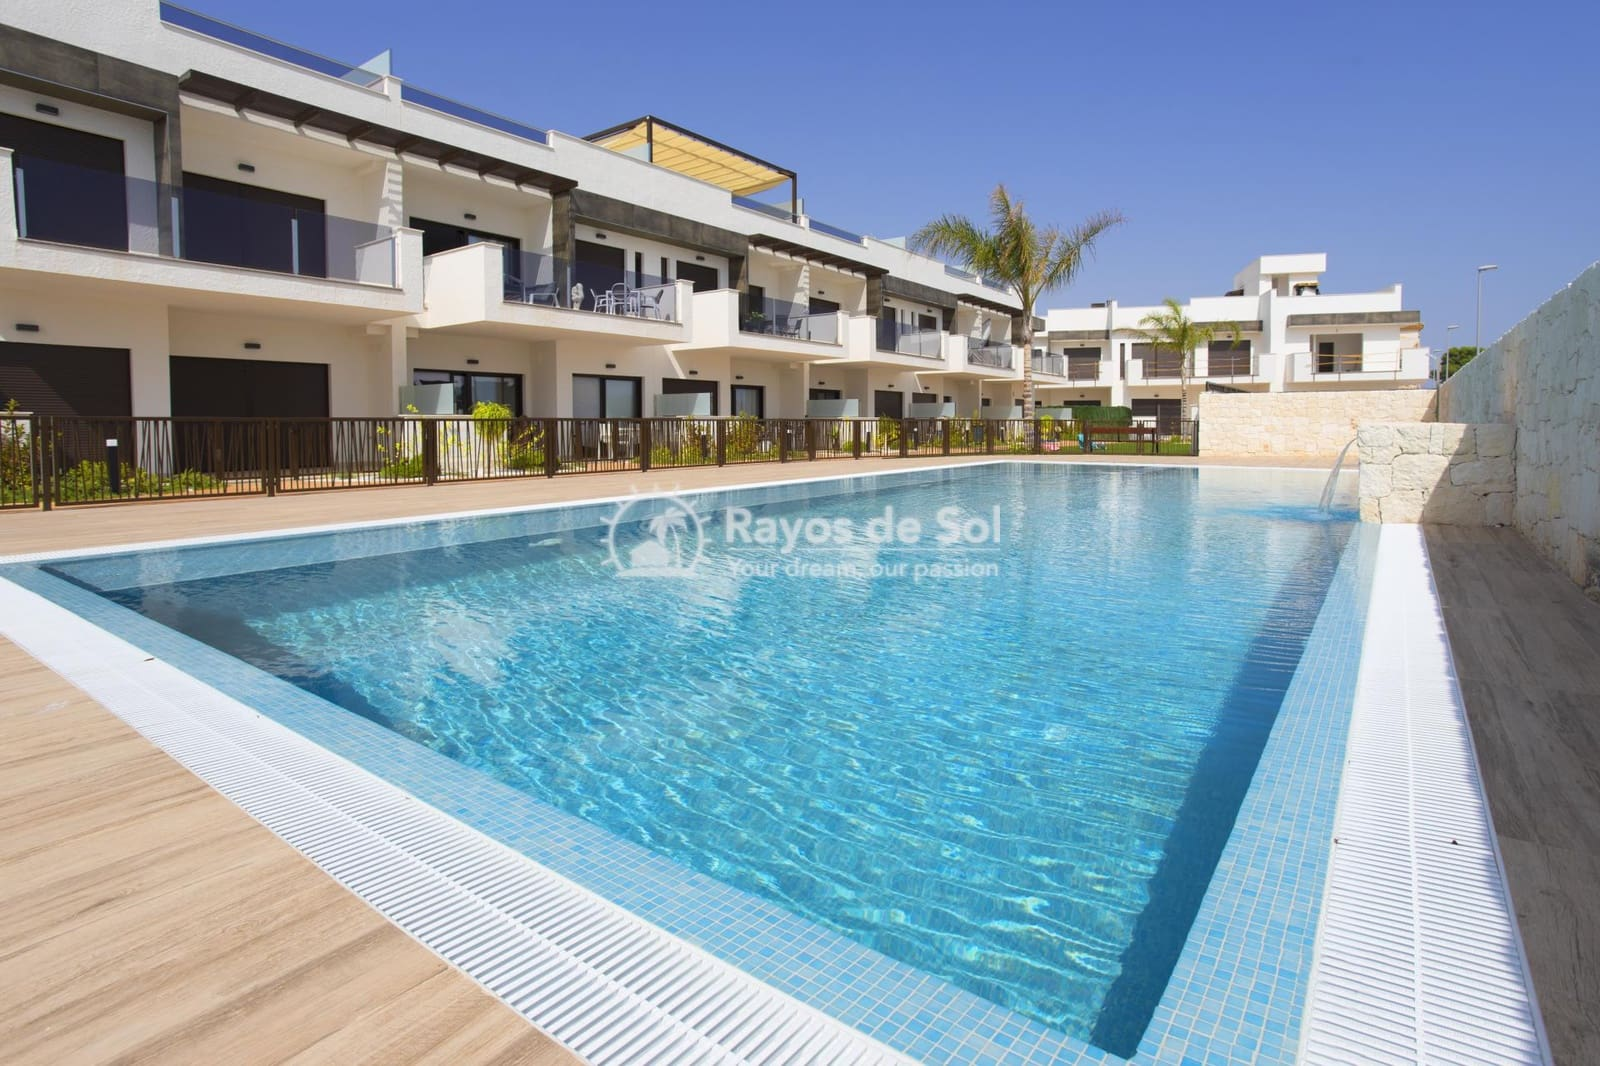 2 bedroom Apartment for sale in Los Alcazares with pool - € 159,000 (Ref: 3849972)